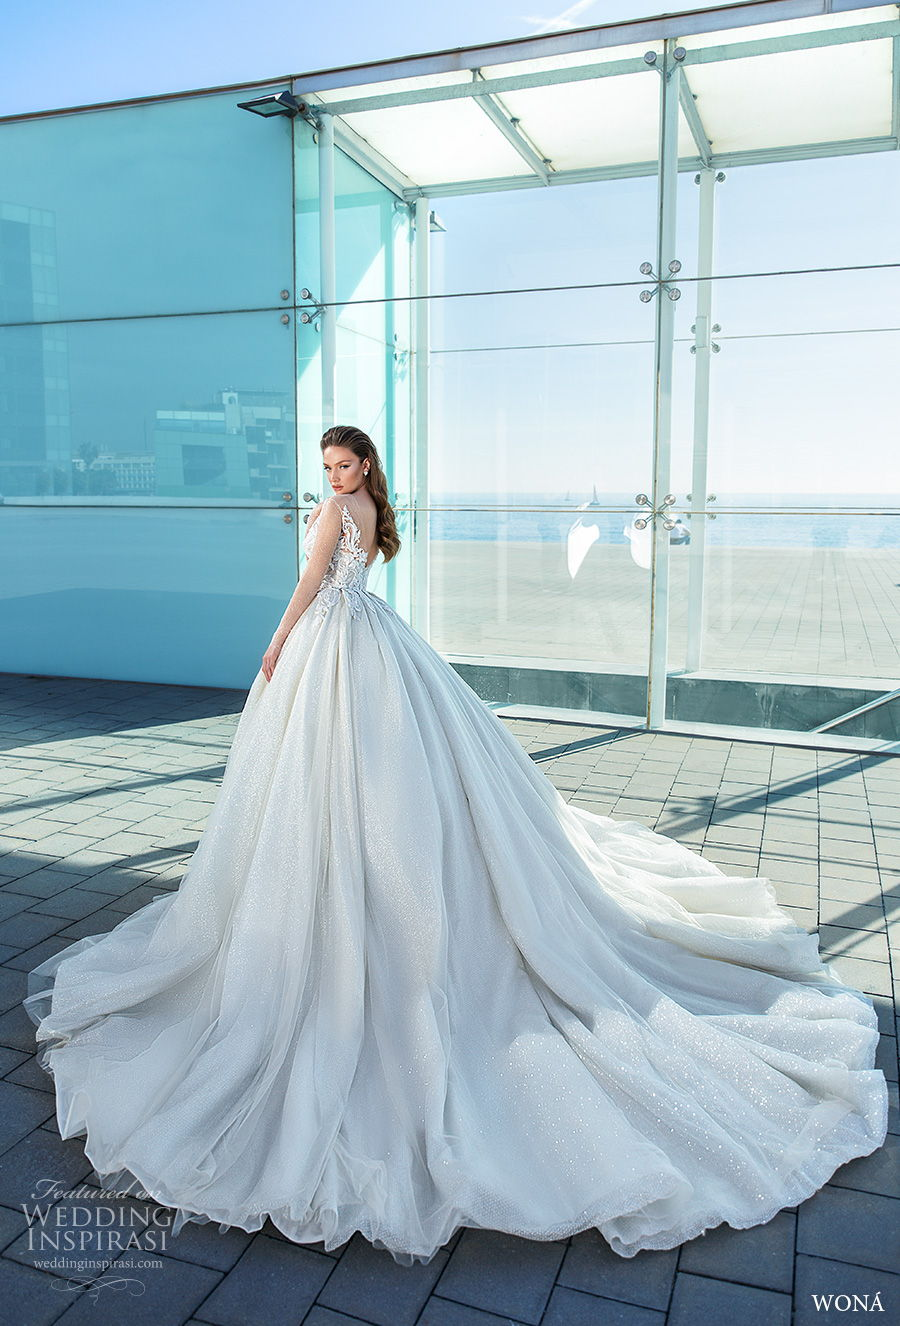 wona 2020 diva bridal long sheer sleeves illusion bateau sweetheart neckline heavily embellished bodice princess ball gown a  line wedding dress v back chapel train (14) bv